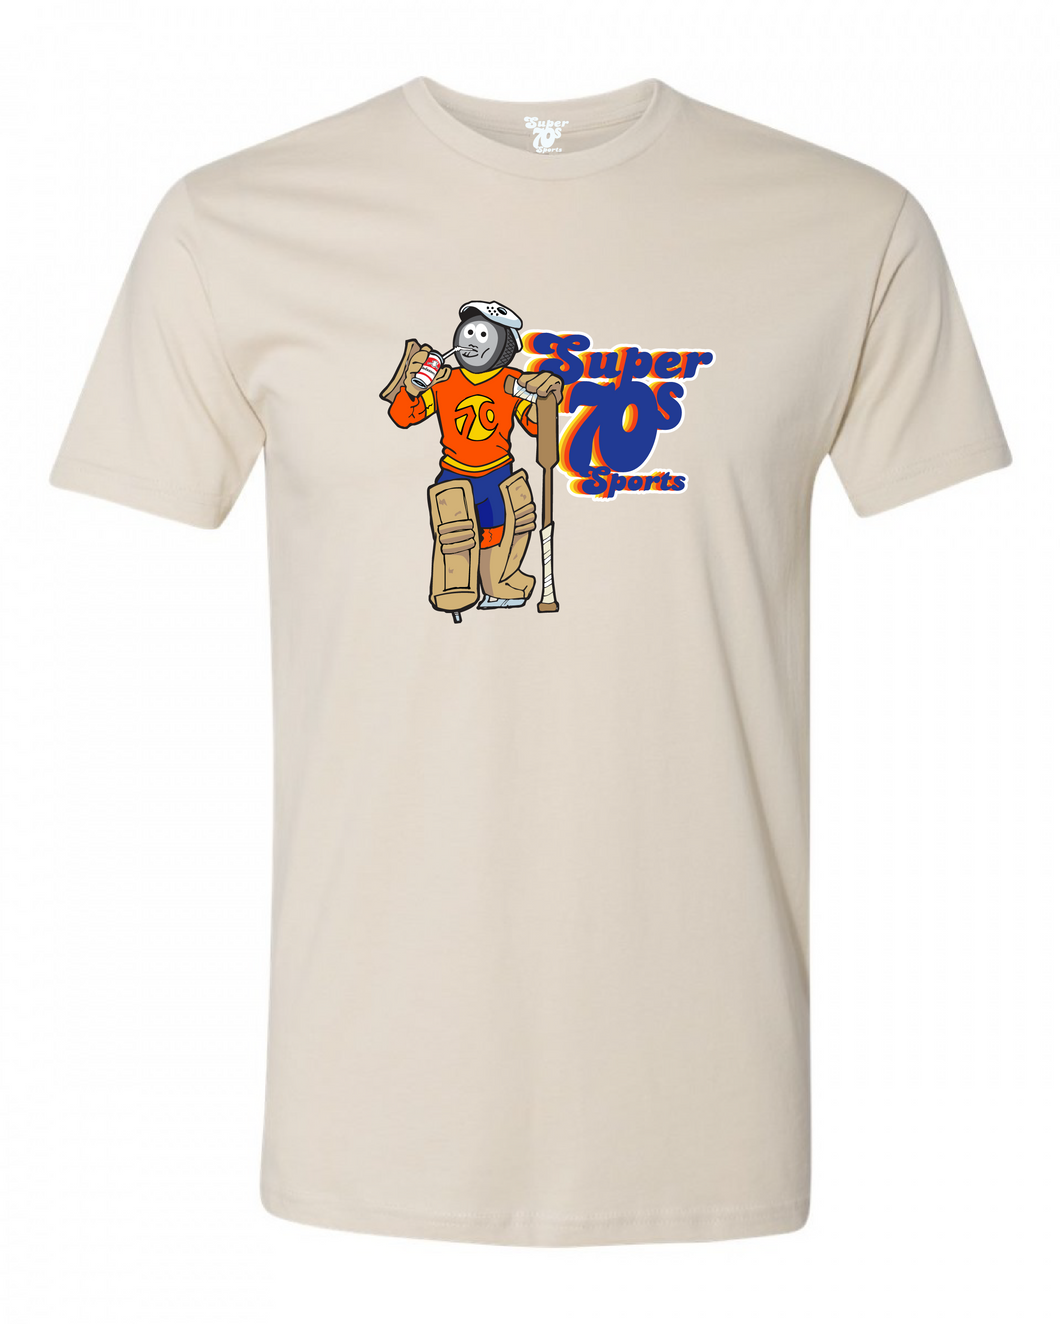 S7S Hockey Man Tee